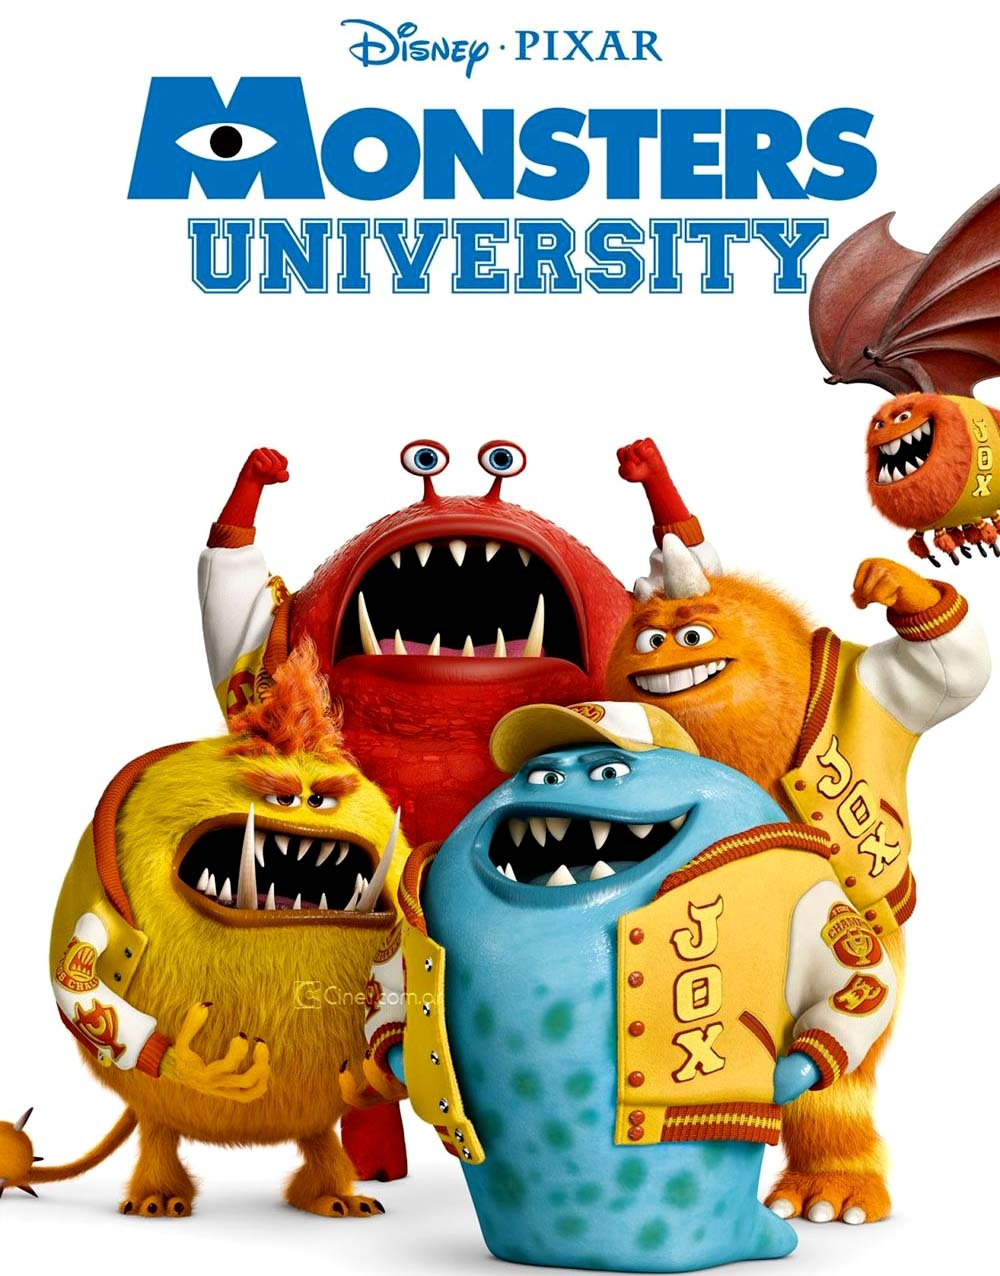 Monsters university 2013 movie free download so you easily watch and download this animation full film right now monsters university voltagebd Image collections